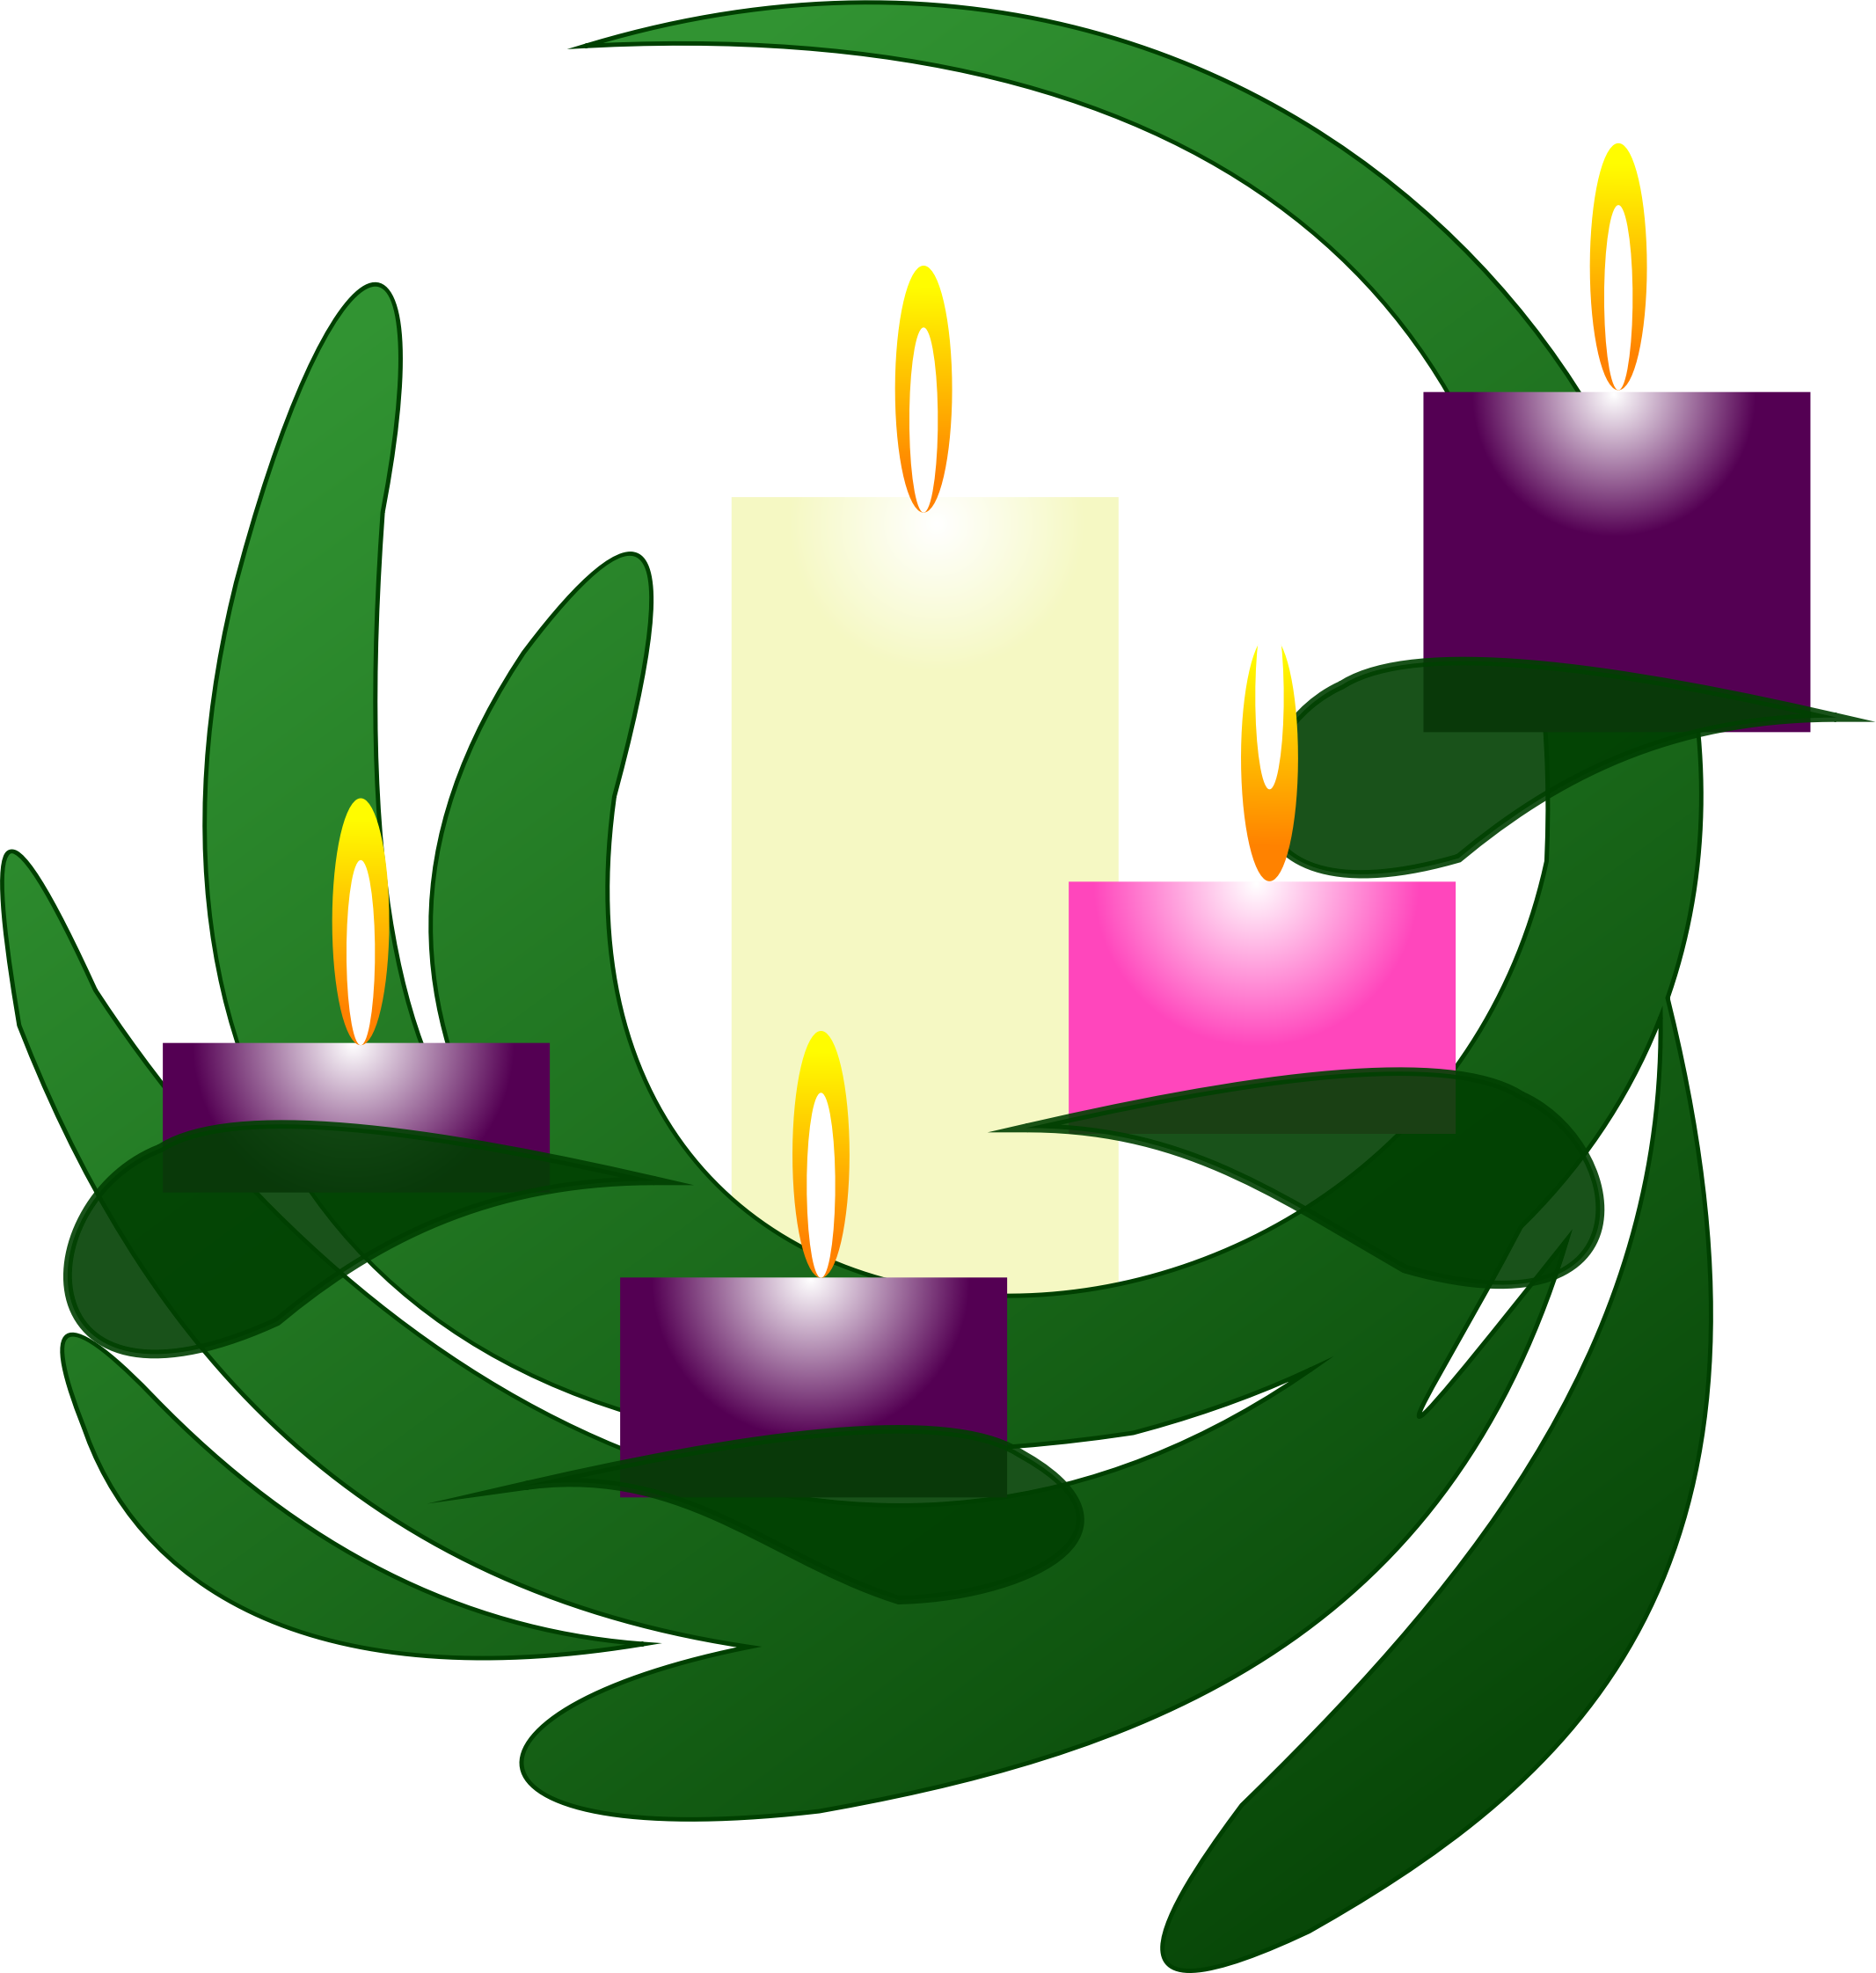 Photo of Free Advent Wreath Clipart # 105: Free Advent Wreath Clipart # 105 #Advent #Adve …